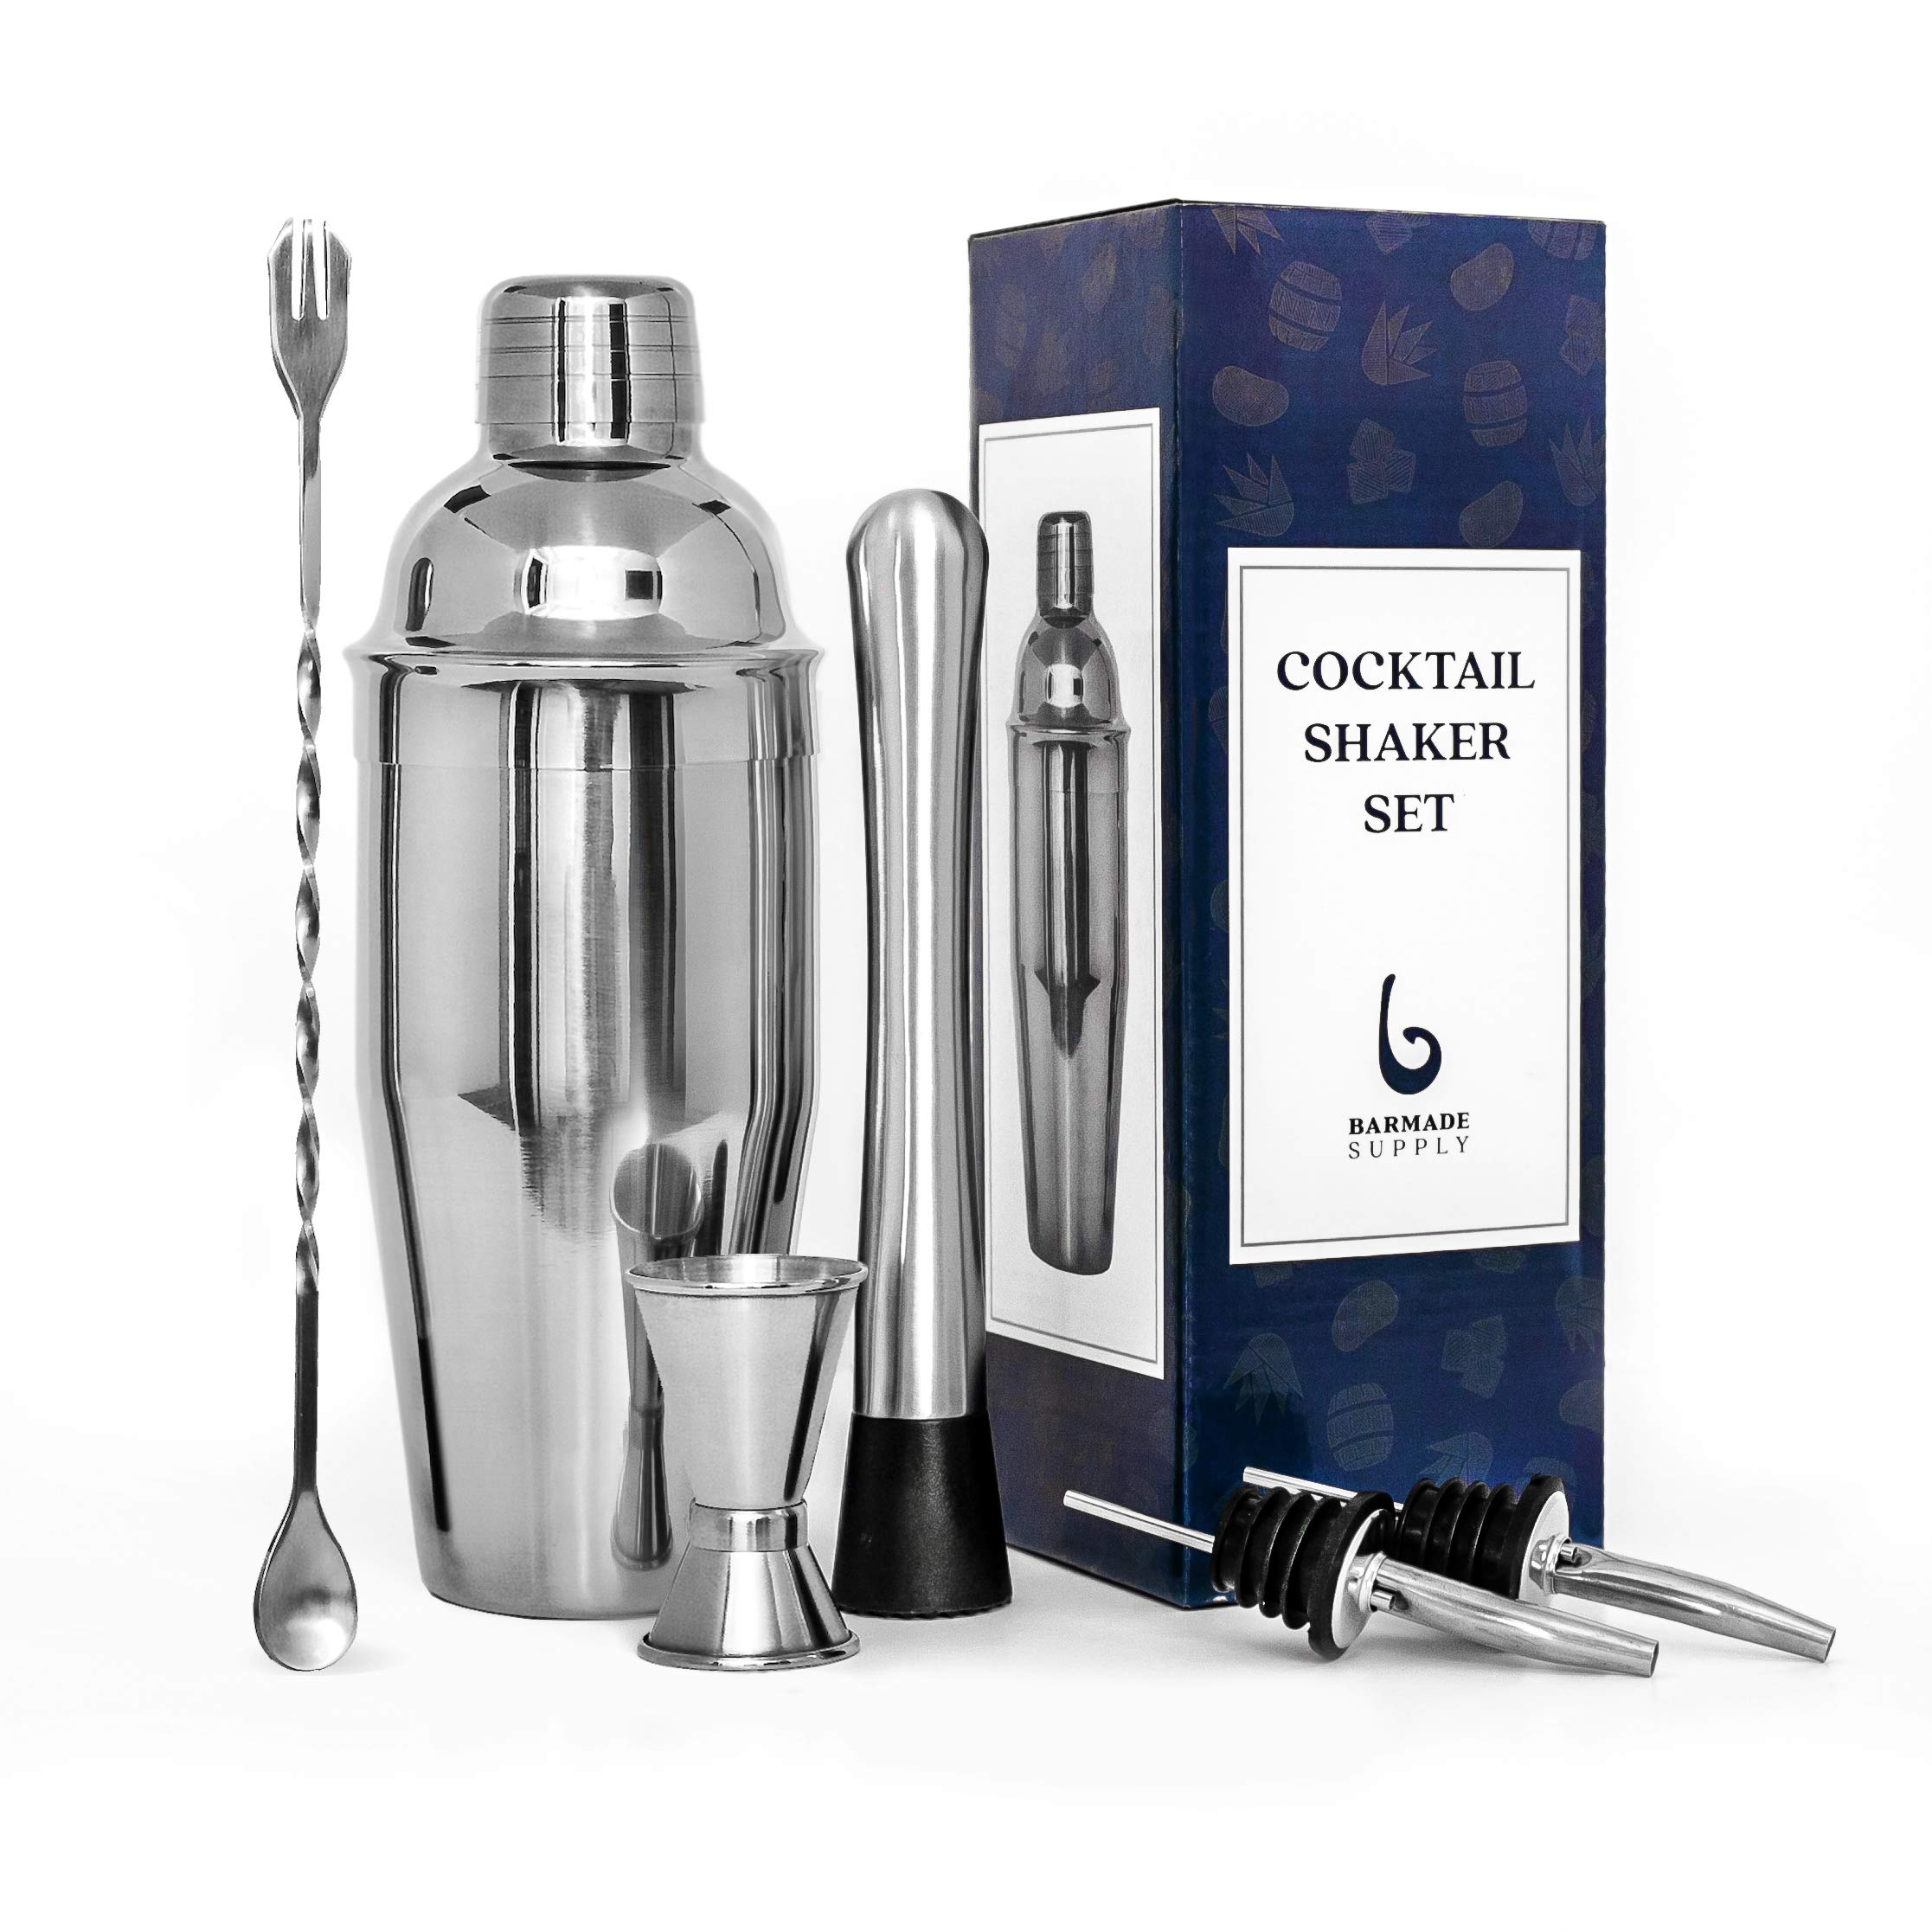 Cocktail Shaker Set by Barmade Supply - 24 Oz stainless steel shaker with strainer, 10 Inch mixing spoon, Muddler, Double jigger, 2 Liquor pourers - Professional bar accessories kit - Unique gift